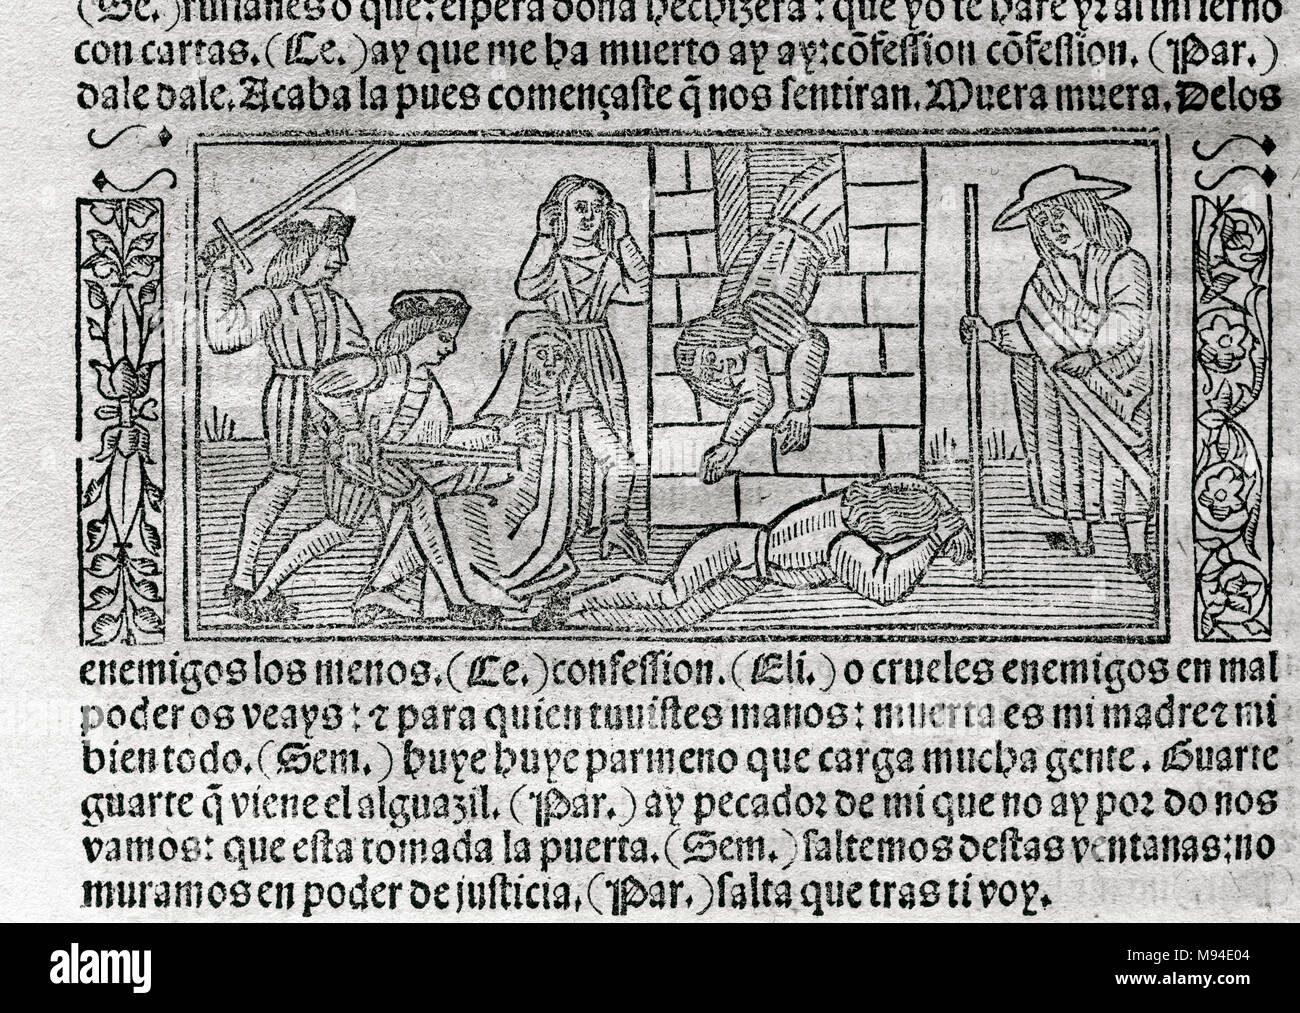 The Celestina or Tragicomedy of Calisto and Melibea (1499), by Fernando de Rojas (ca.1465-1541). Engraving depicting a scene. Edition printed in Burgos, Castile, Spain, 1531. Library of Catalonia. Barcelona. Catalonia. Spain. - Stock Image